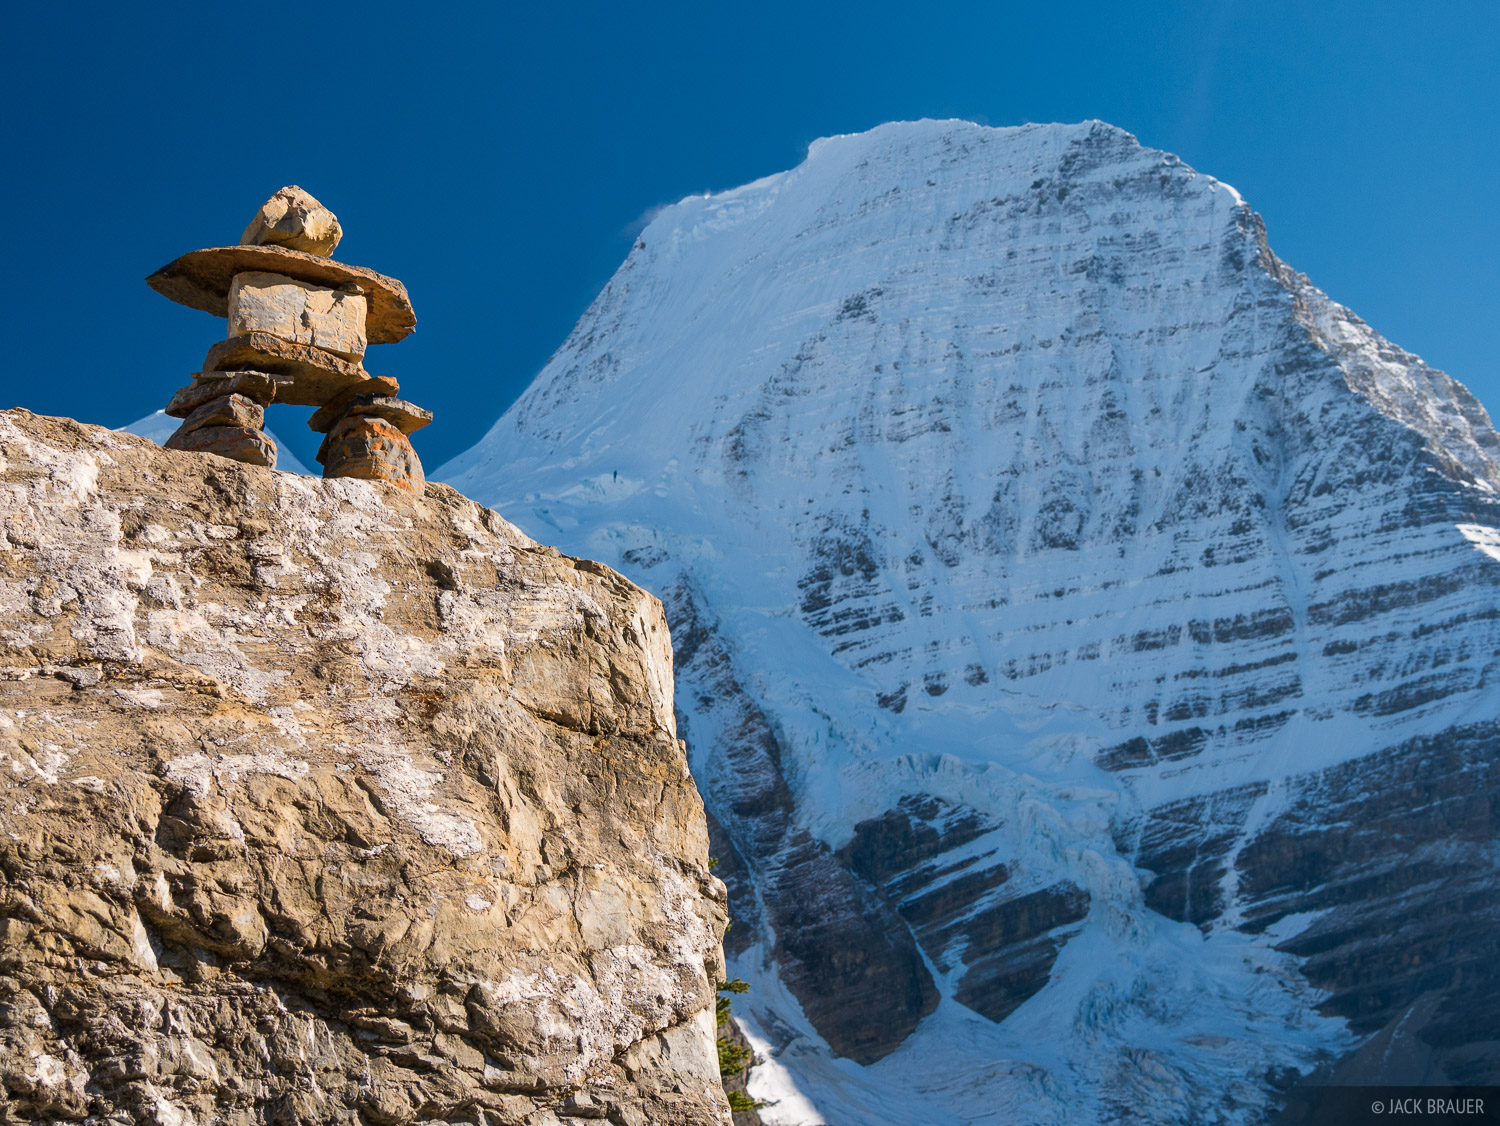 British Columbia, Canada, Mount Robson, Mount Robson Provincial Park, cairn, BC, photo